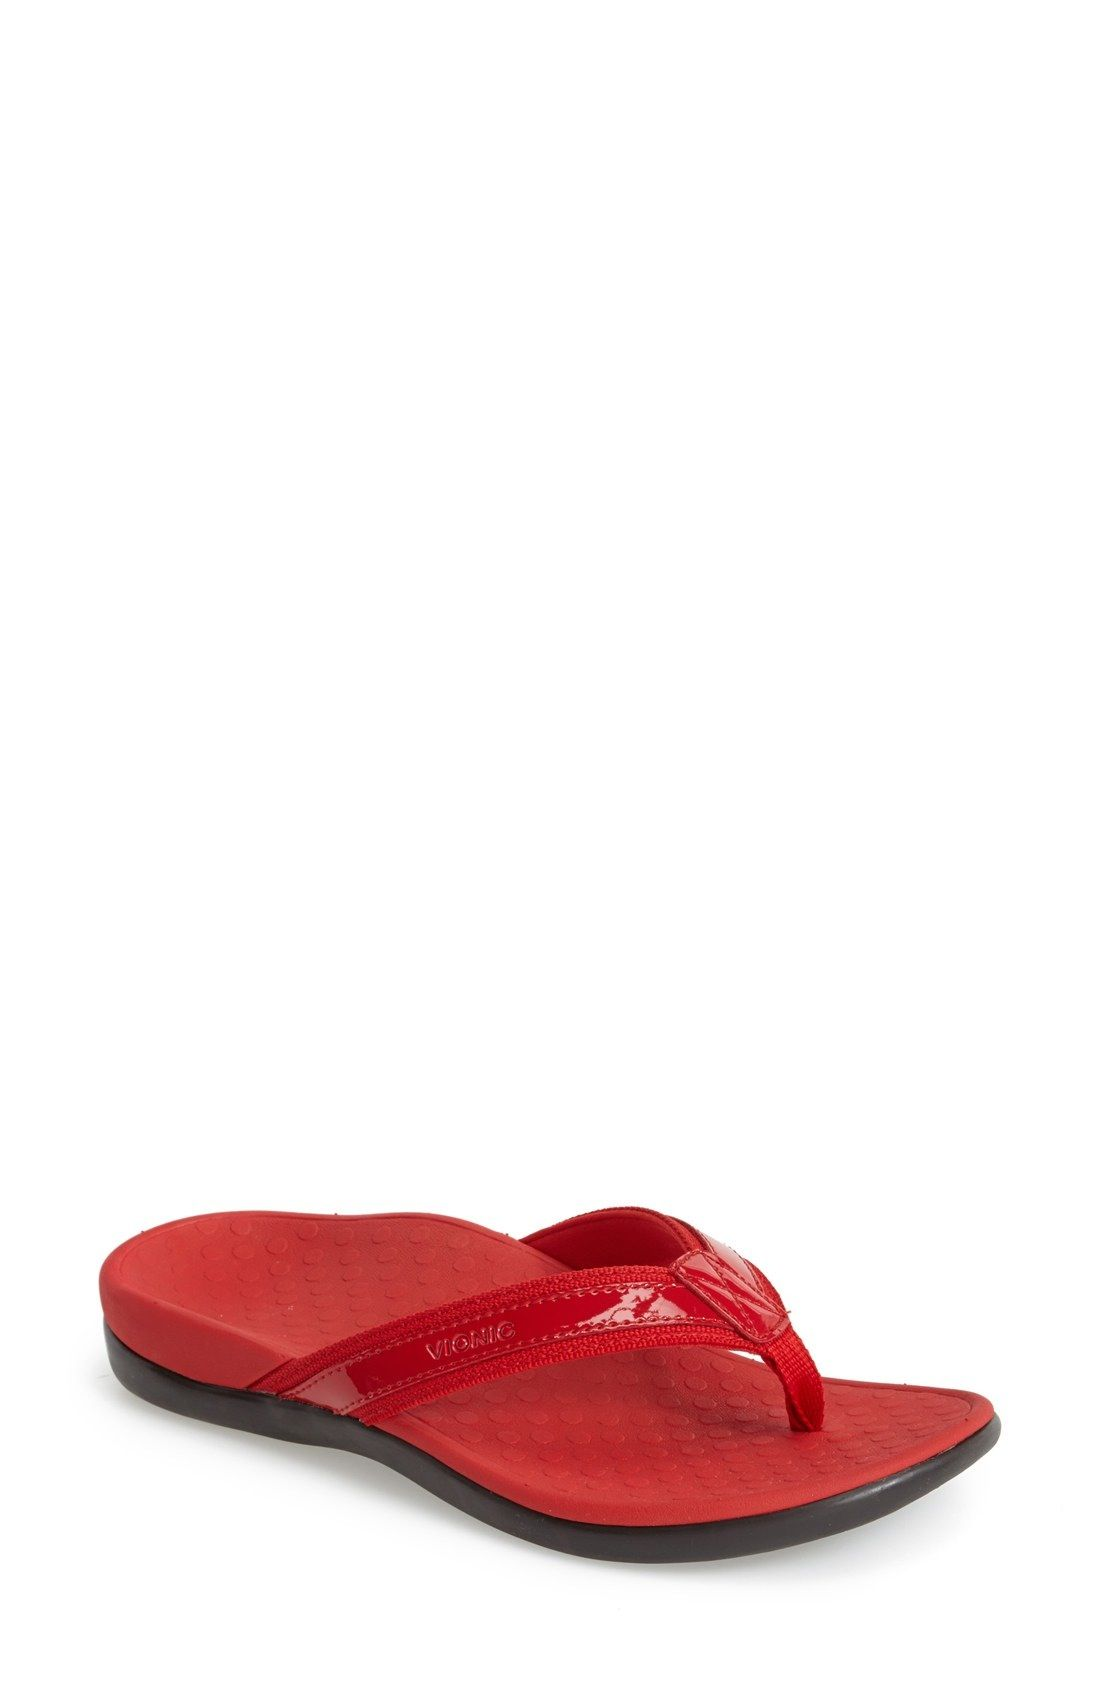 2ae4d98ba Vionic  Tide II  Flip Flop (Women) available at  Nordstrom